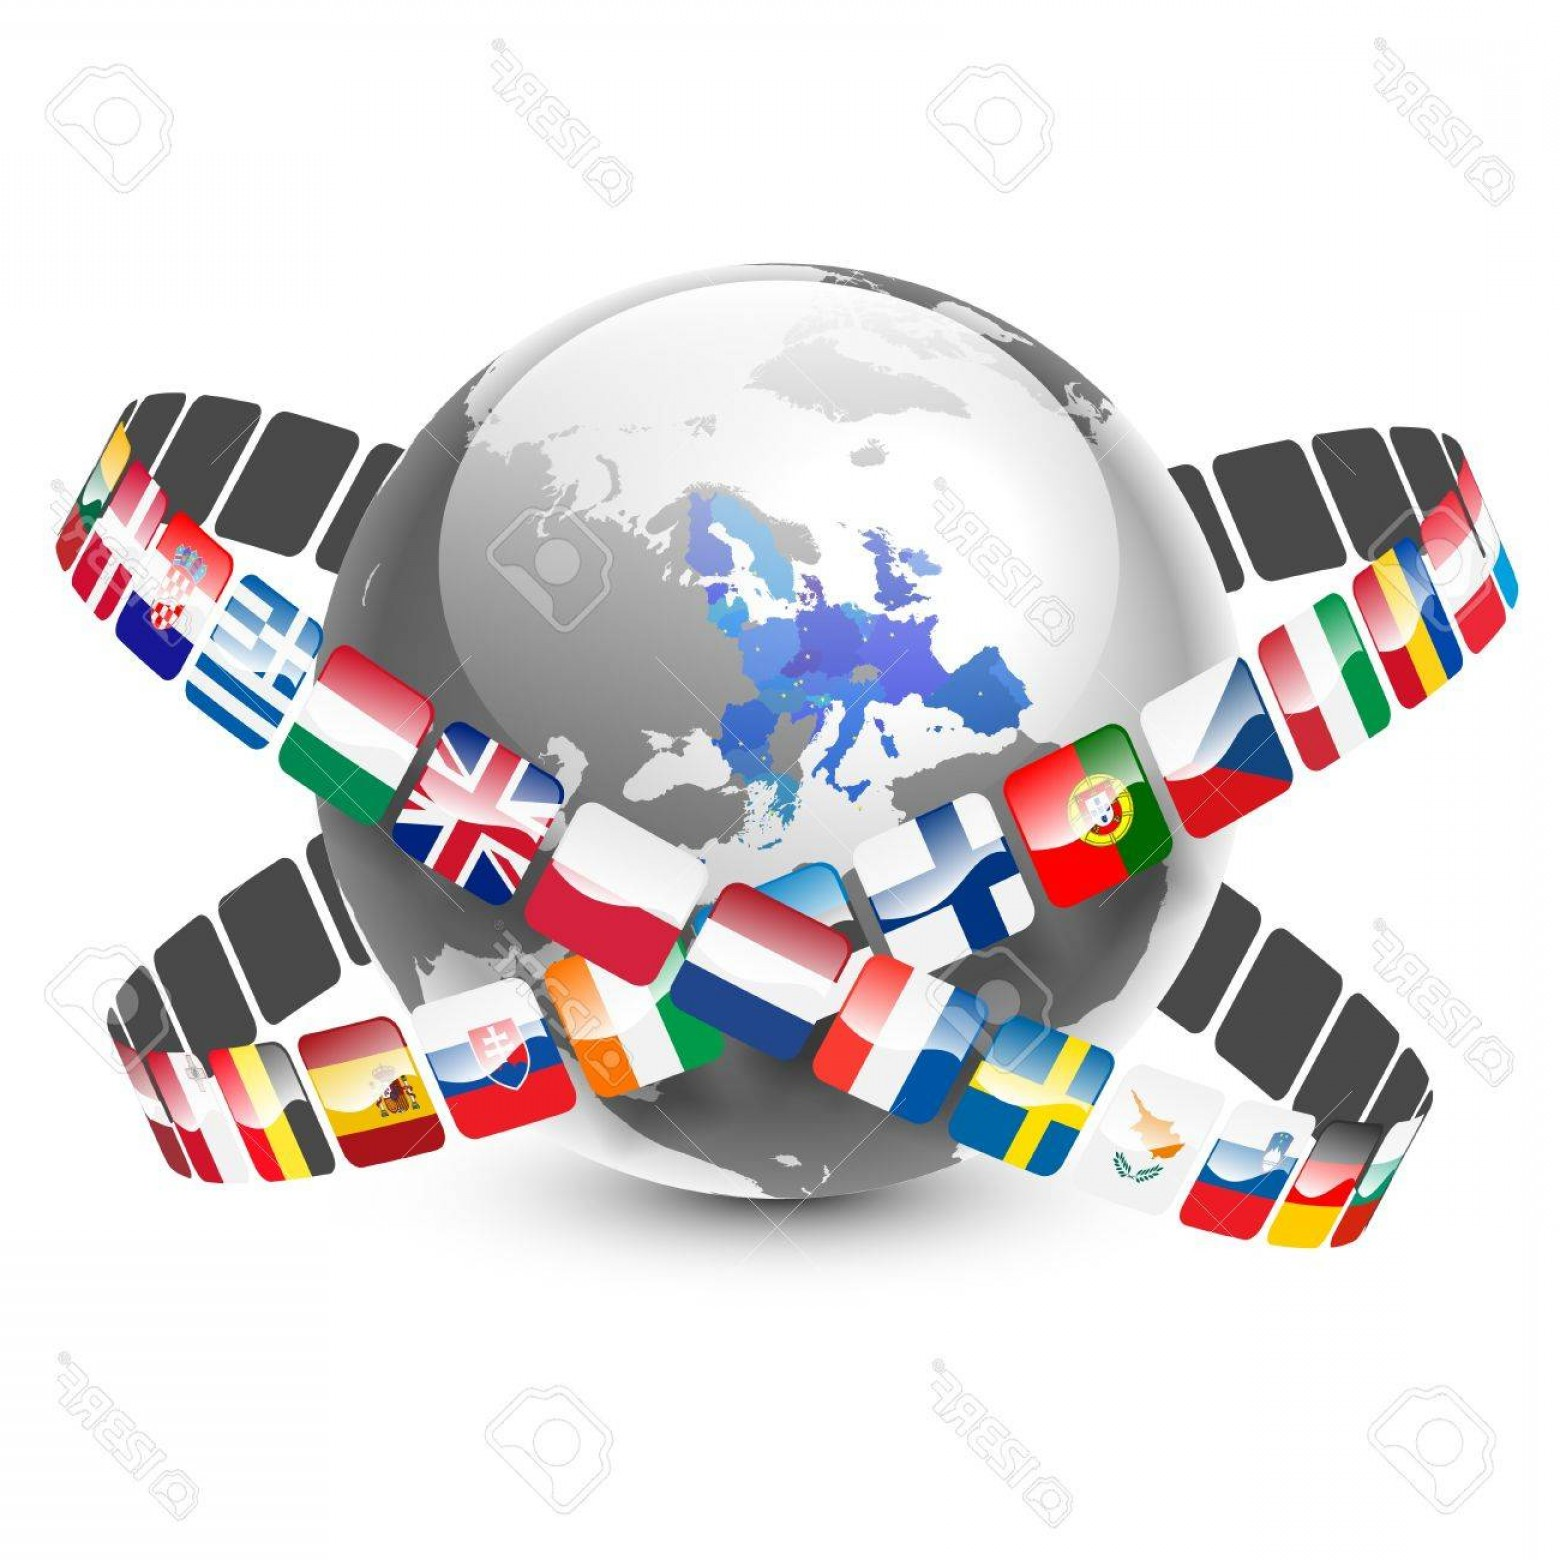 Vector Globe Countries: Photoglobe With European Union Countries And Flags